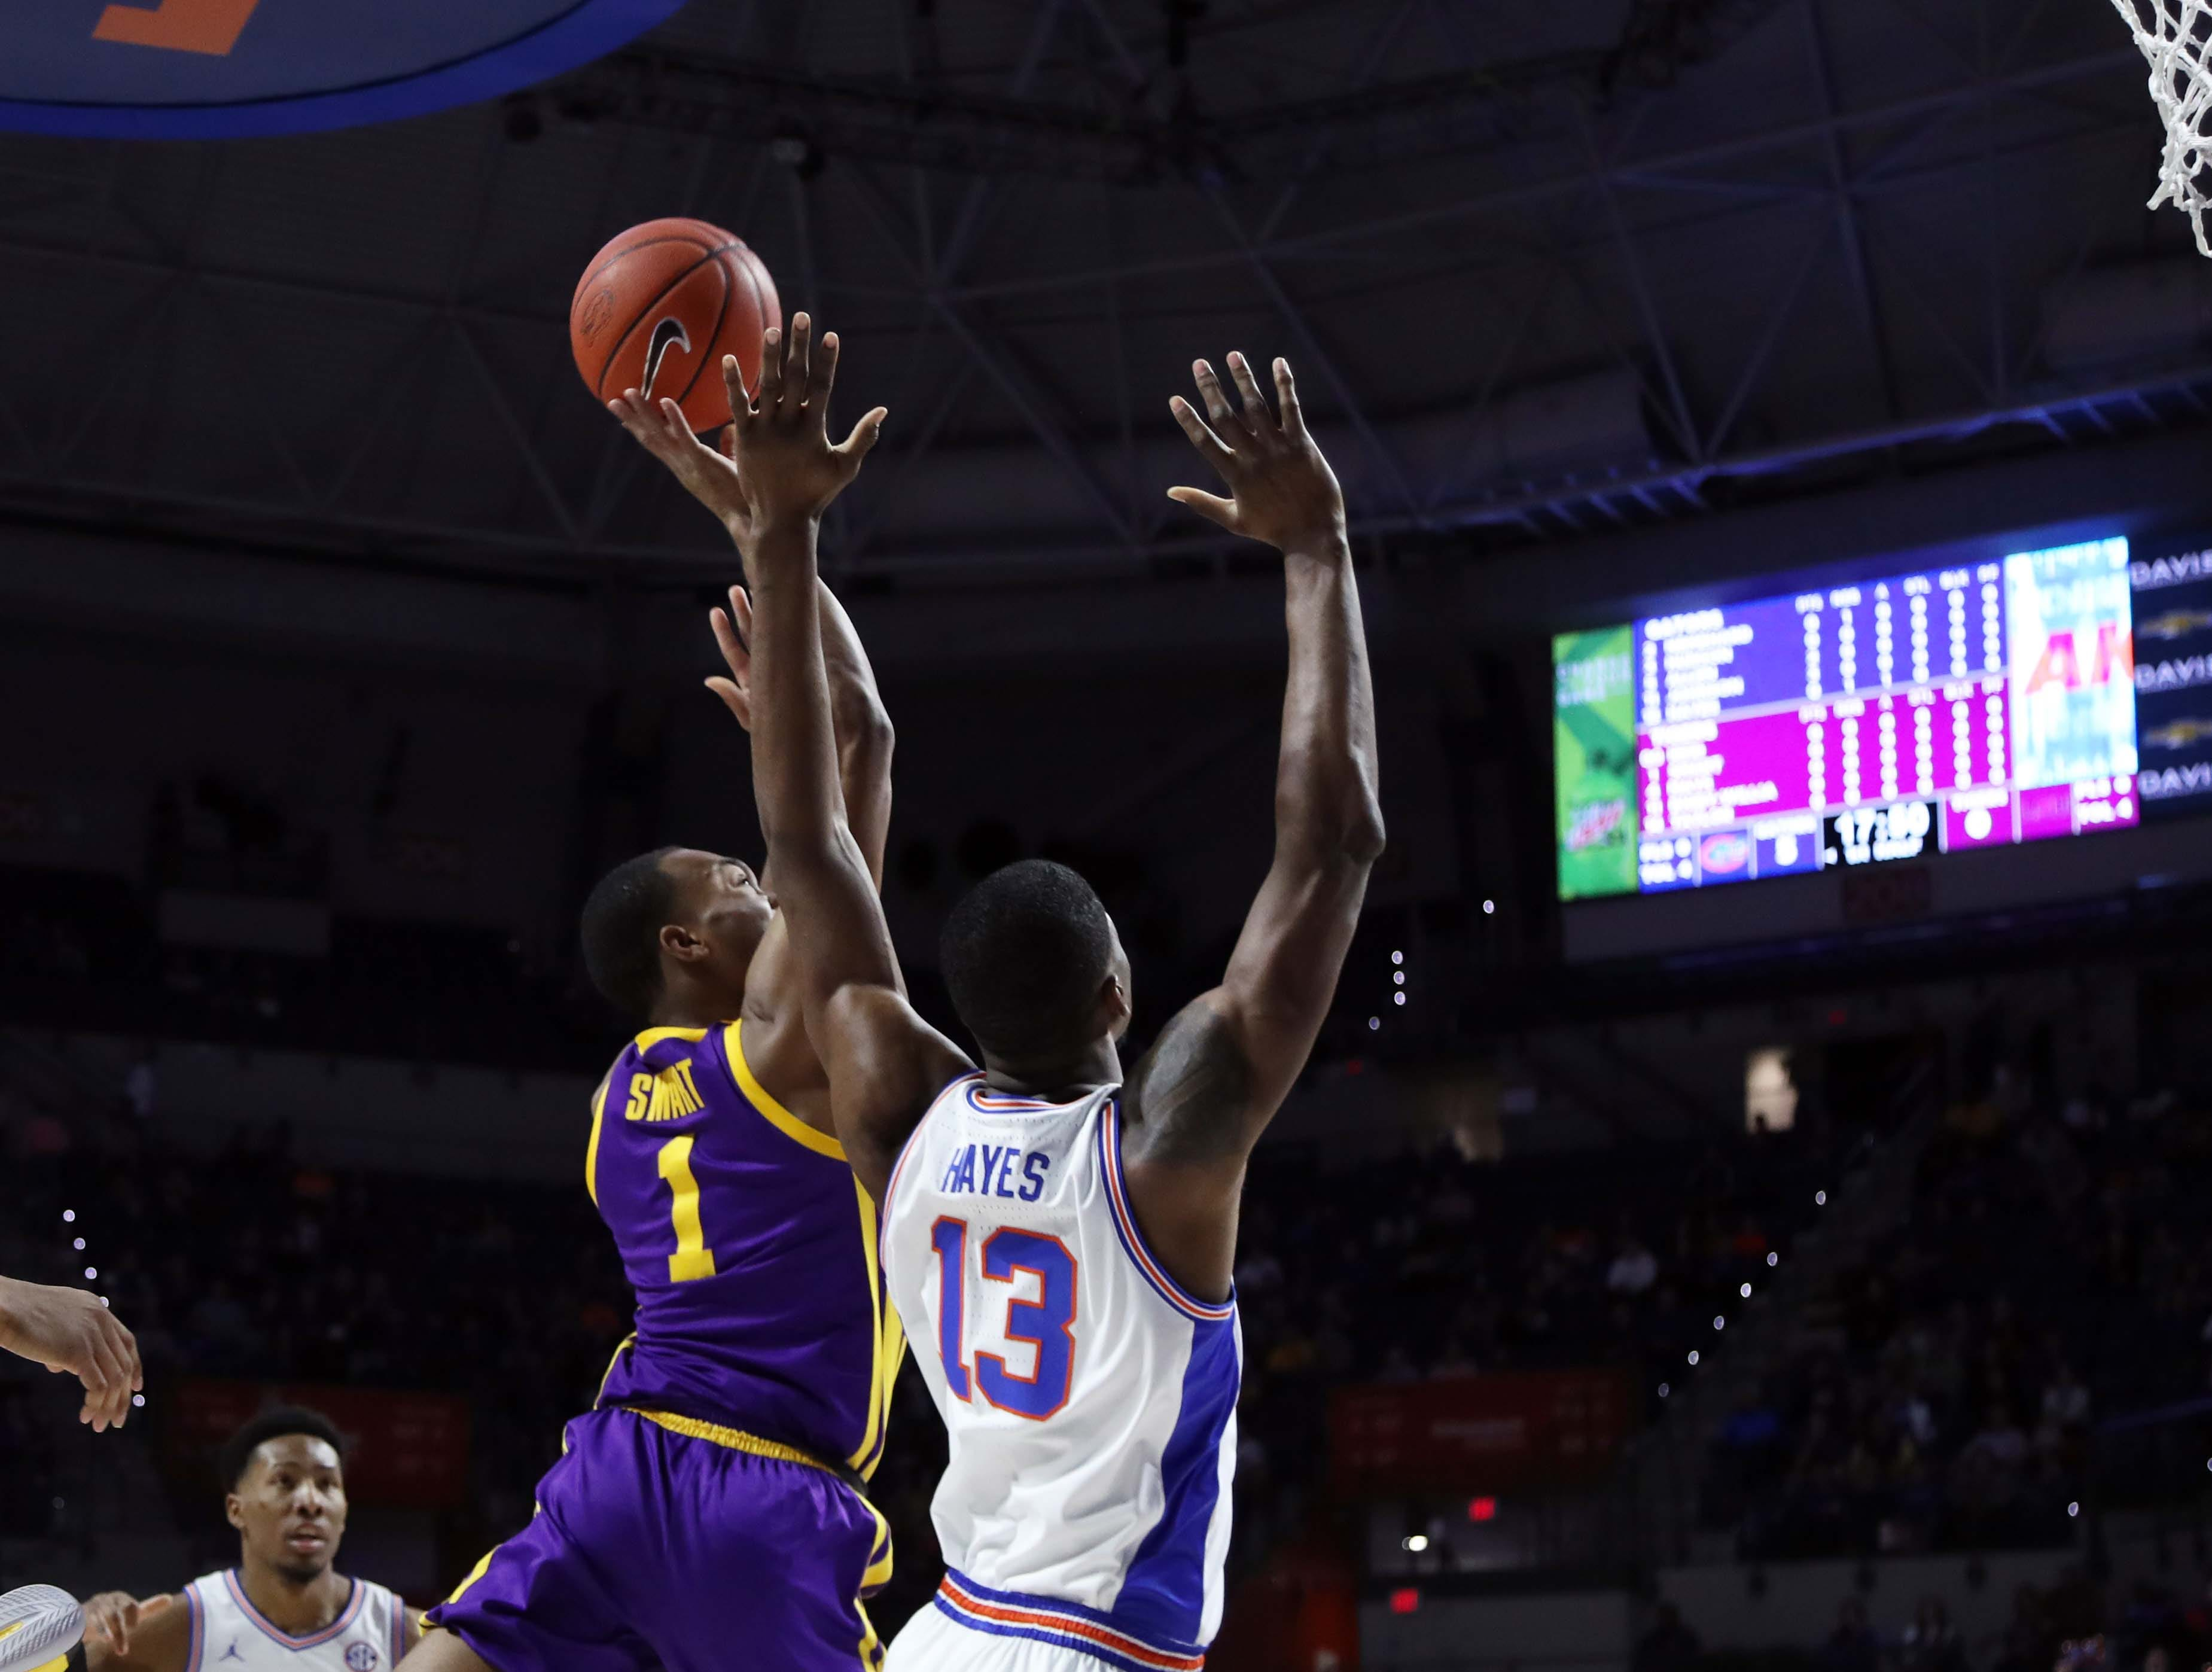 Mar 6, 2019; Gainesville, FL, USA; LSU Tigers guard Javonte Smart (1) shoots over Florida Gators center Kevarrius Hayes (13)  during the first half at Exactech Arena. Mandatory Credit: Kim Klement-USA TODAY Sports